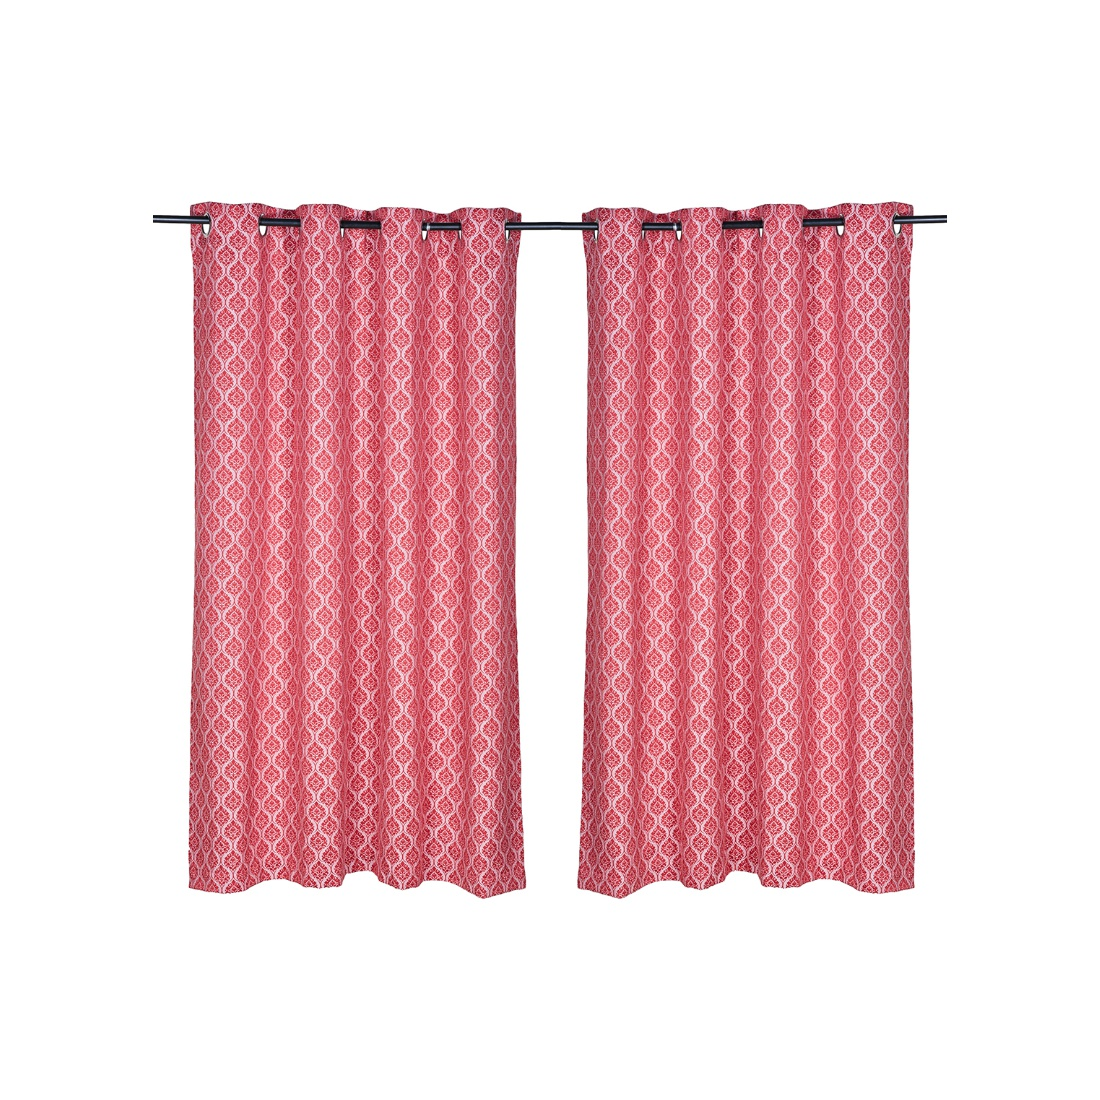 Fiesta Jacquard Set Of 2 Window Curtains Red Polyester Window Curtains in Red Colour by Living Essence